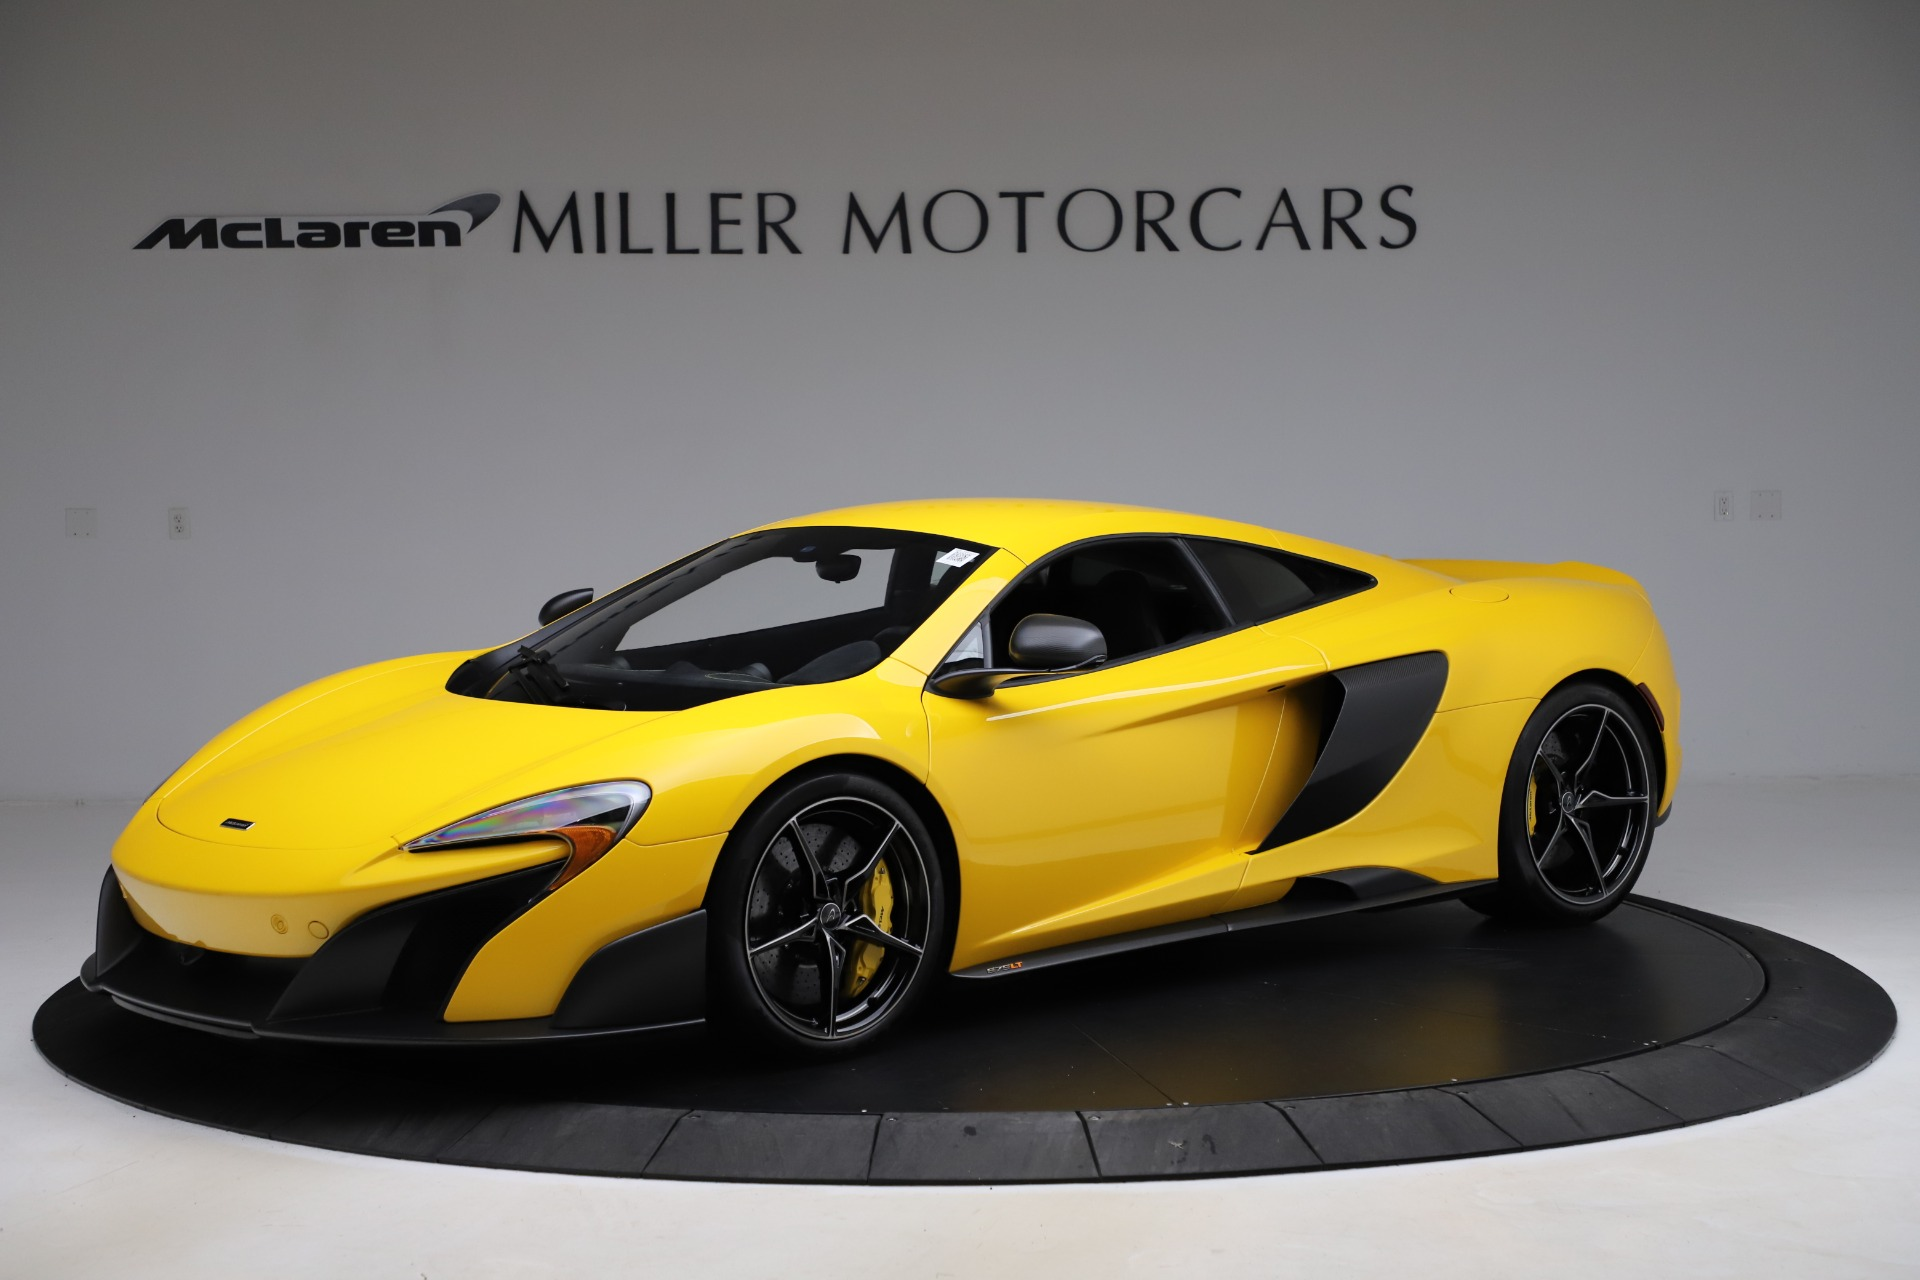 Used 2016 McLaren 675LT Coupe for sale $225,900 at Maserati of Westport in Westport CT 06880 1